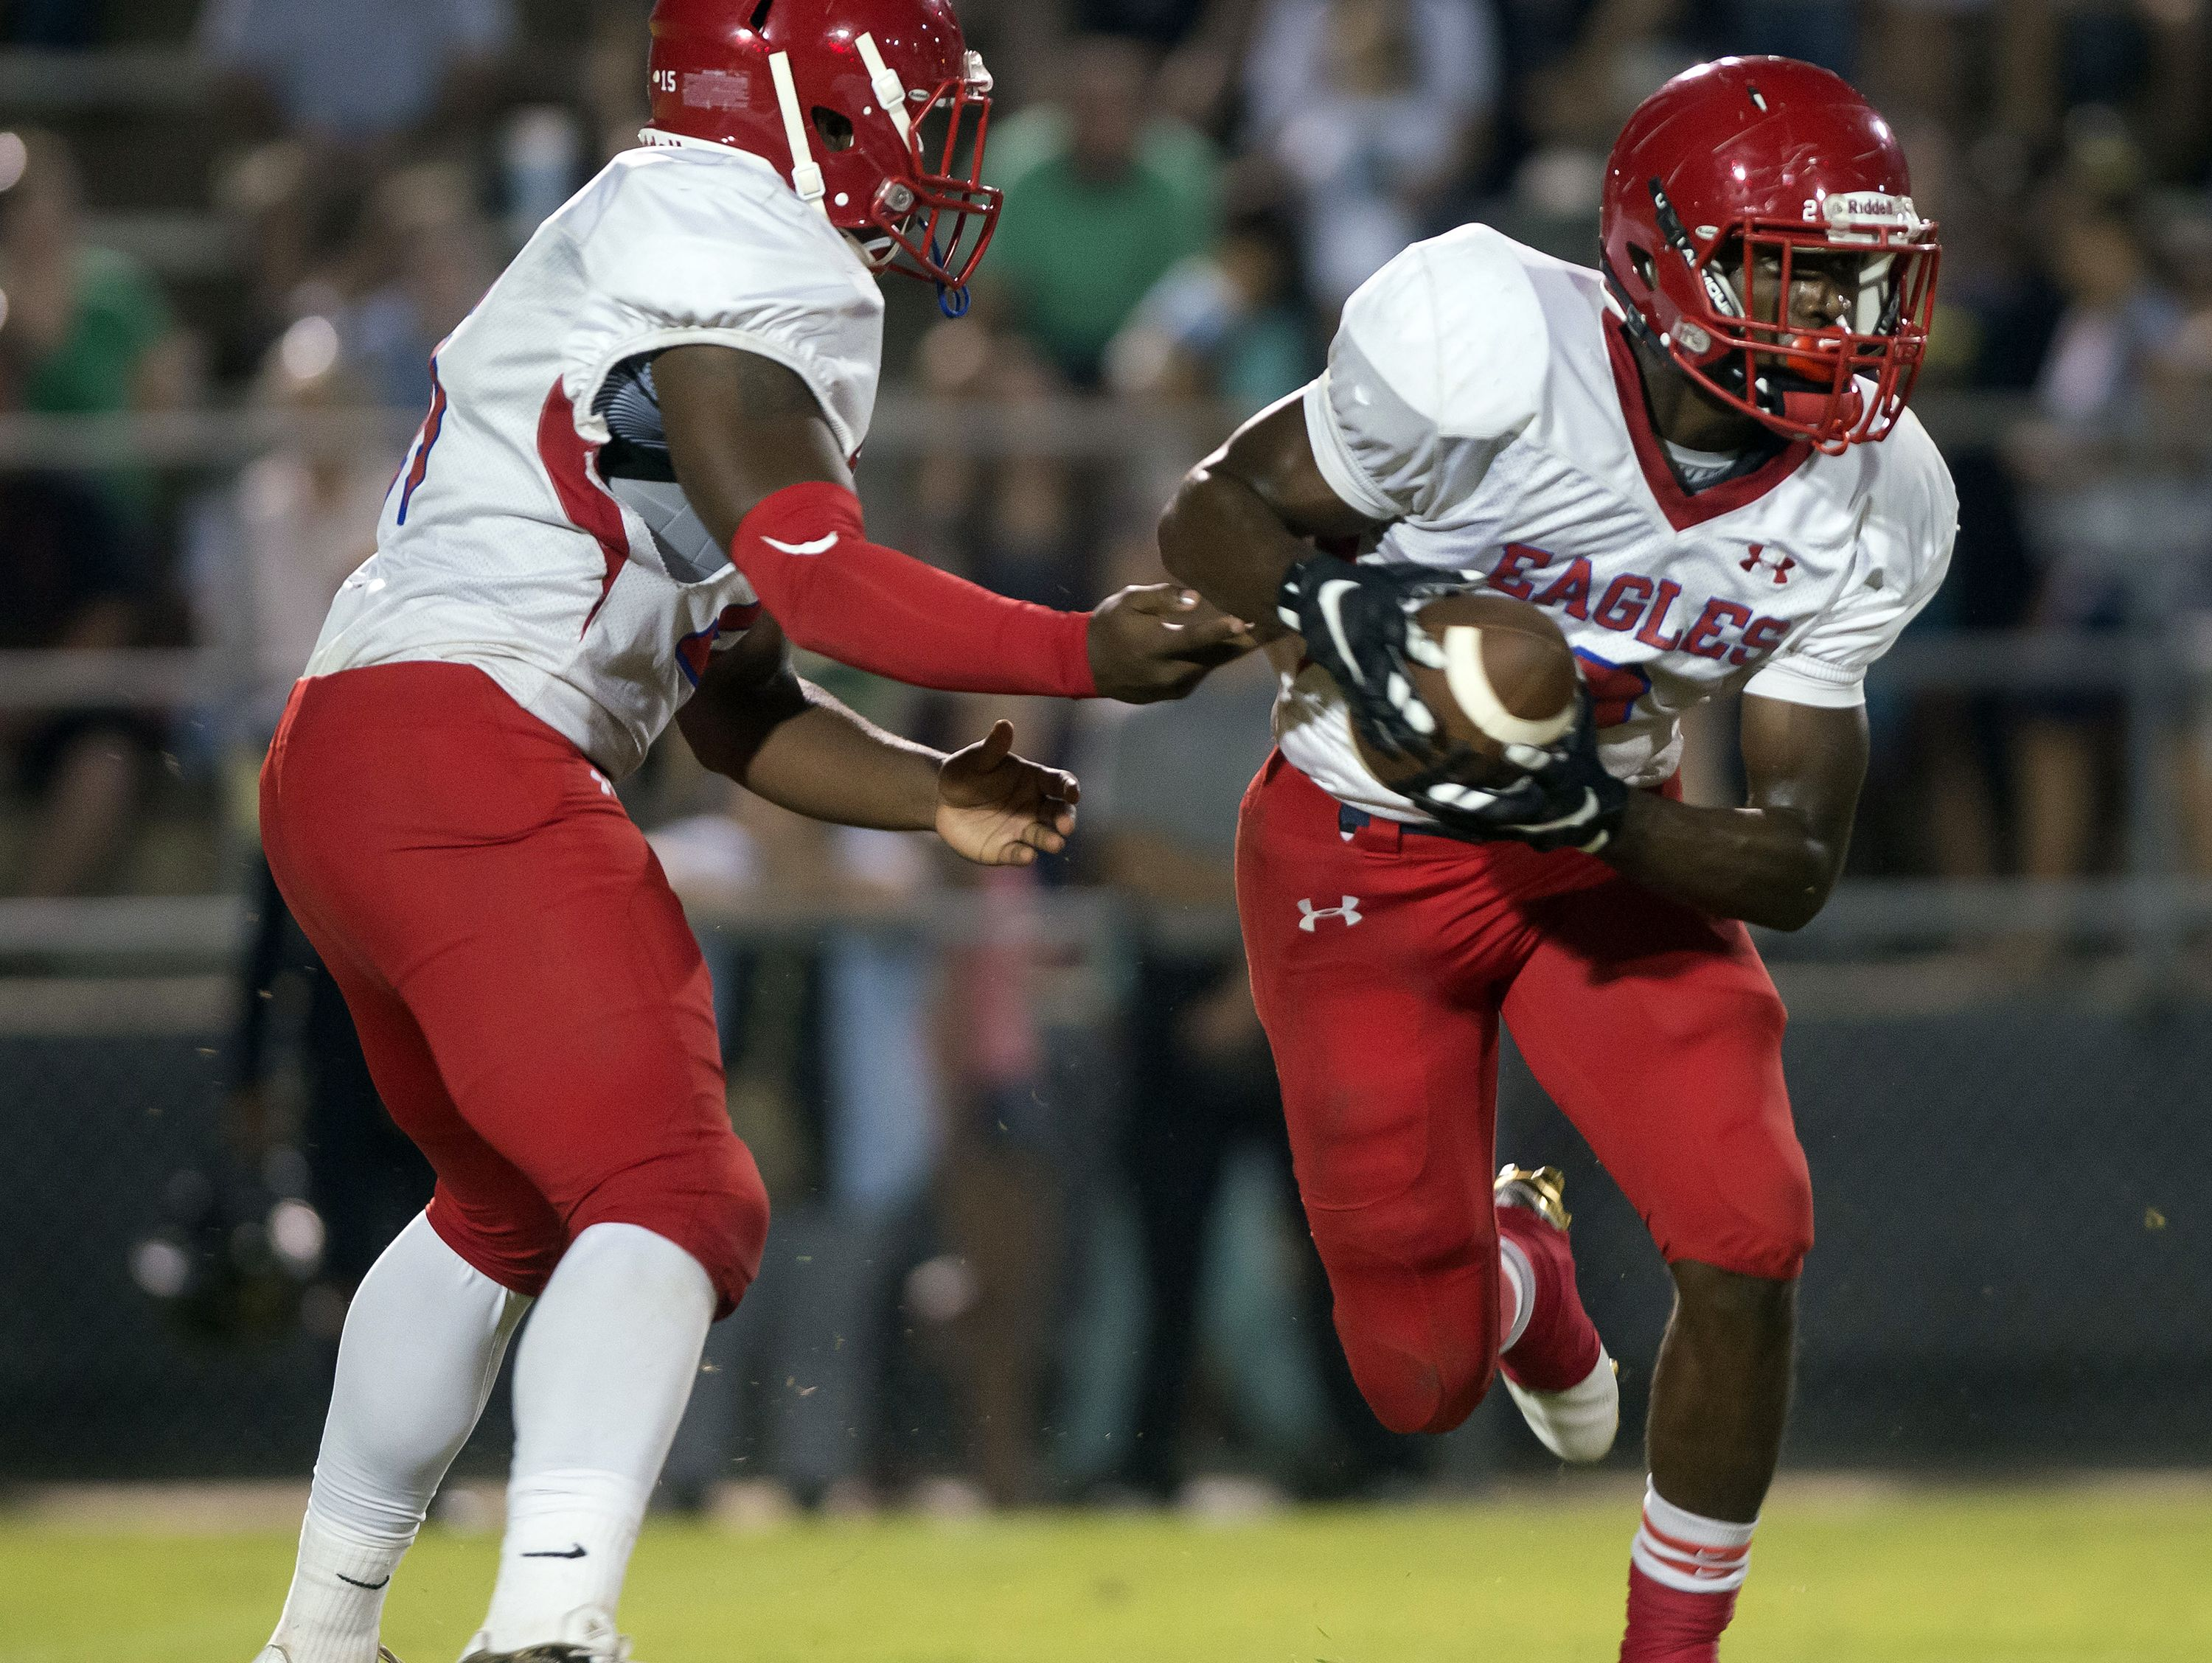 Pine Forest High running back, Jaden Gardner, (No. 2) takes the hand off from quarterback, Xavier Saulsberry (No.15) during the first quarter in Friday night's game against Milton.